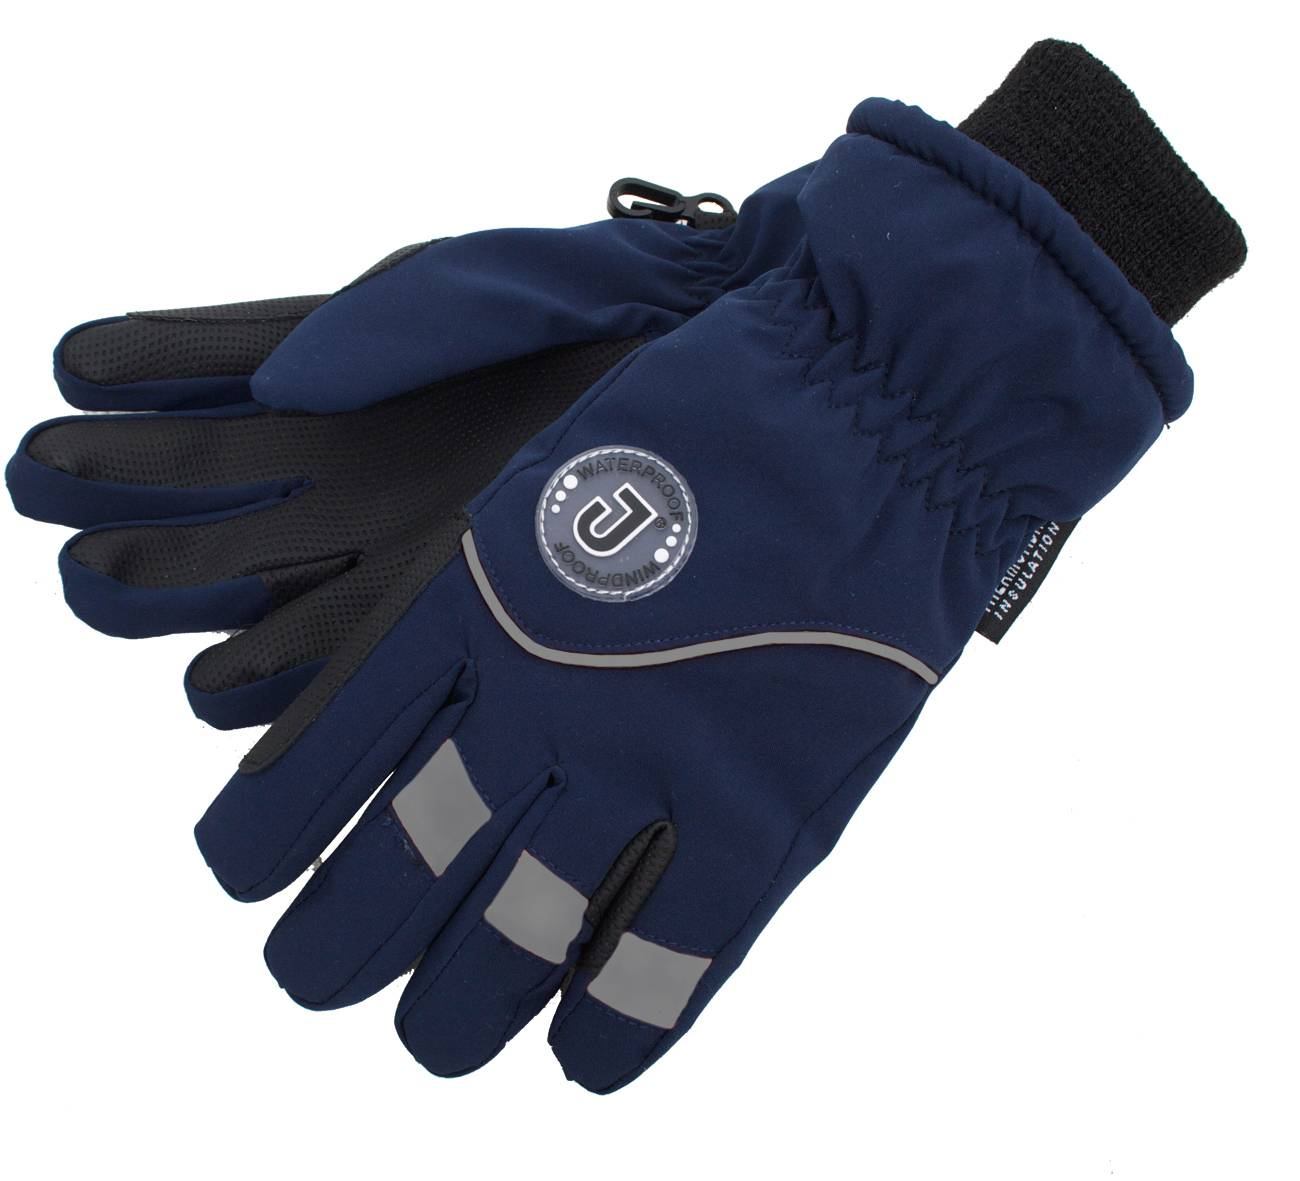 Jacson 5-Finger Handske Thermo Marin Xs